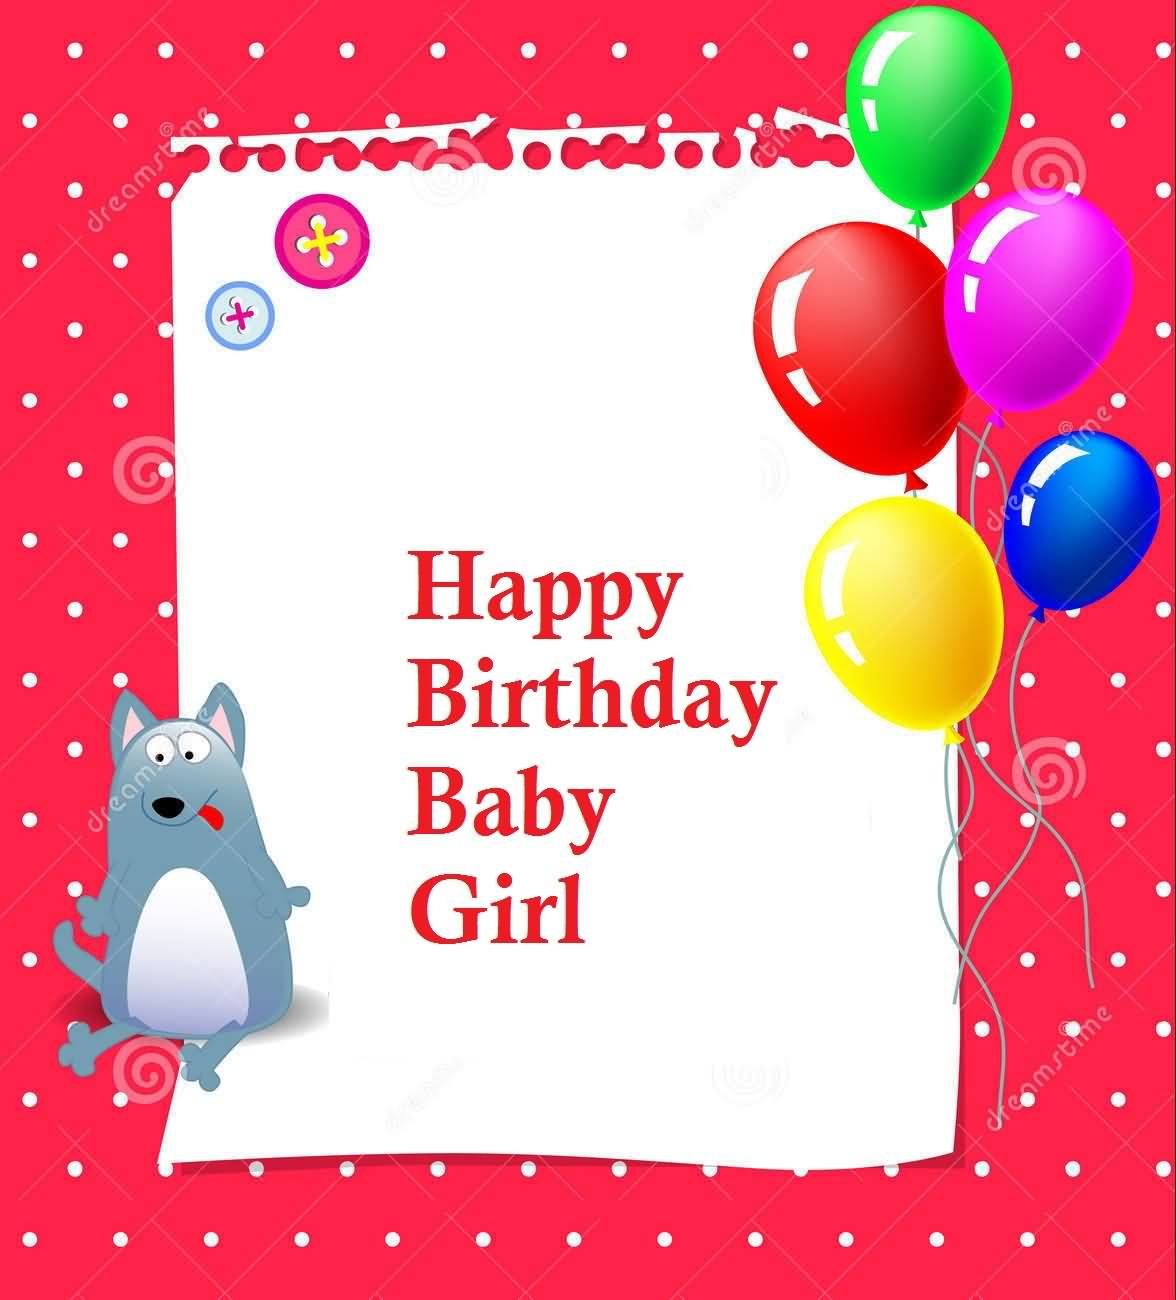 37 Sweet Baby Girl Birthday Greetings Cards Wishes Happy Birthday Wishes To My Baby